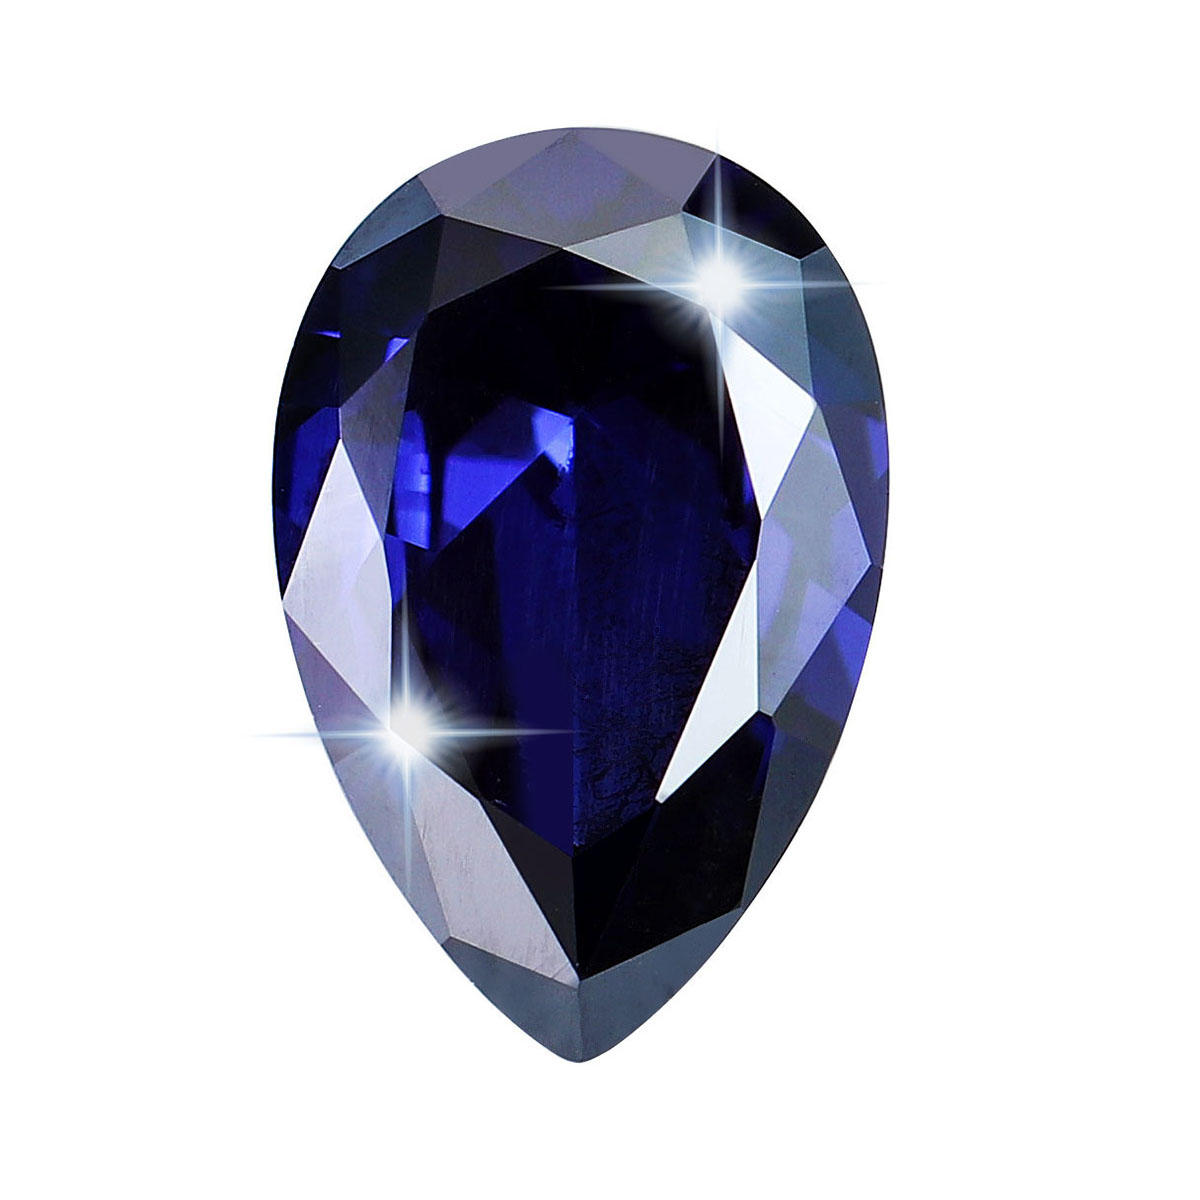 Royal Tanzanite Loose Gemstone 6 hingga 8 Cts AAA Pear Shape Blue Sapphire Diamonds Dekorasi